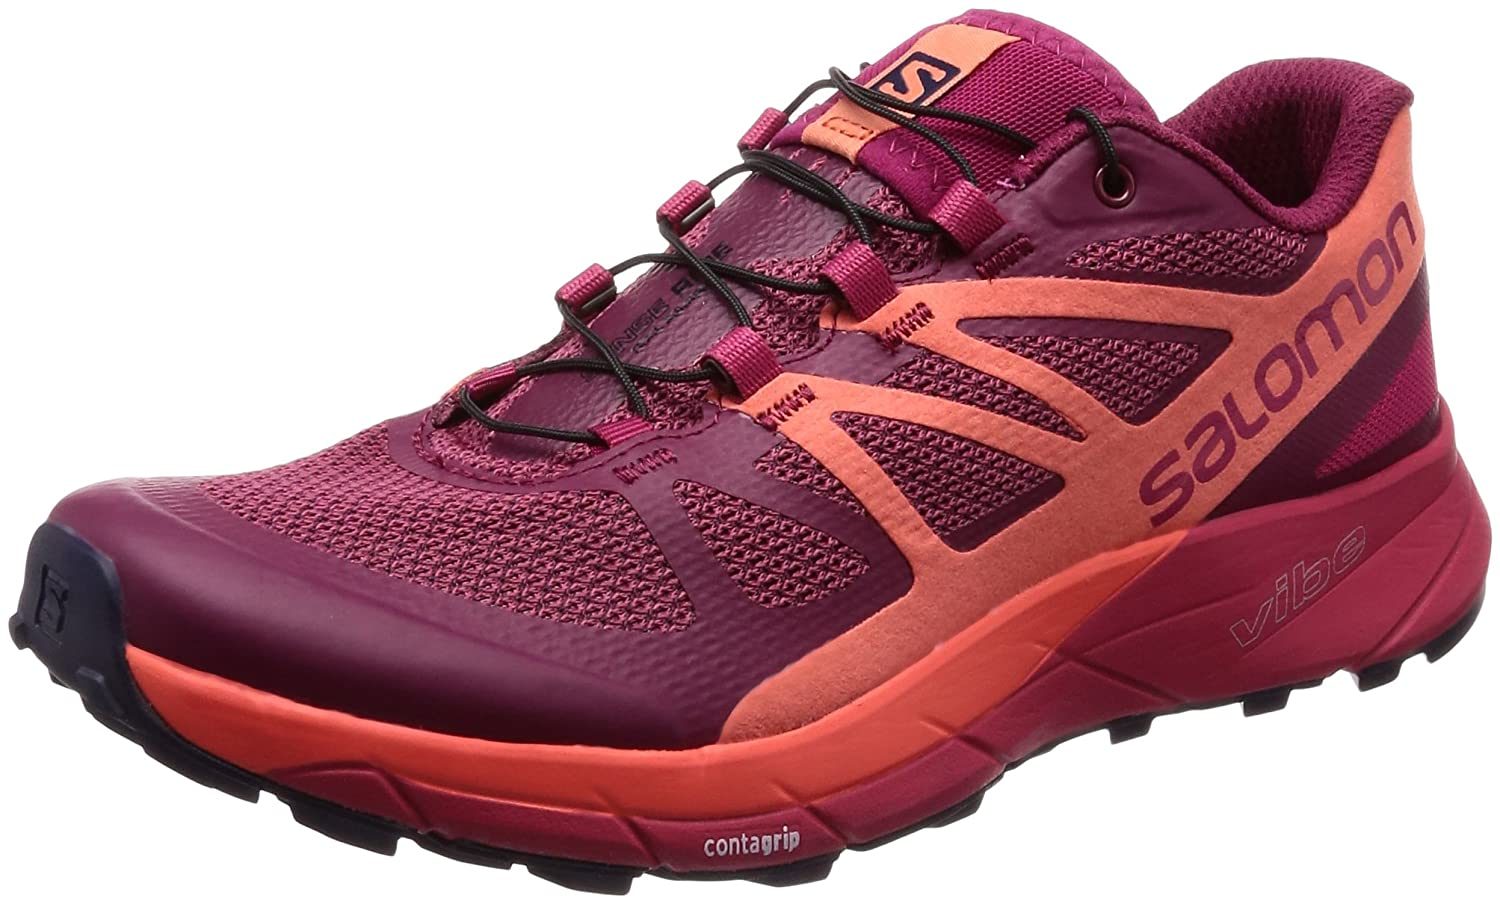 Salomon Sense Ride Running Shoe - Women's B01N1J0PE7 8|SANGRIA L398486